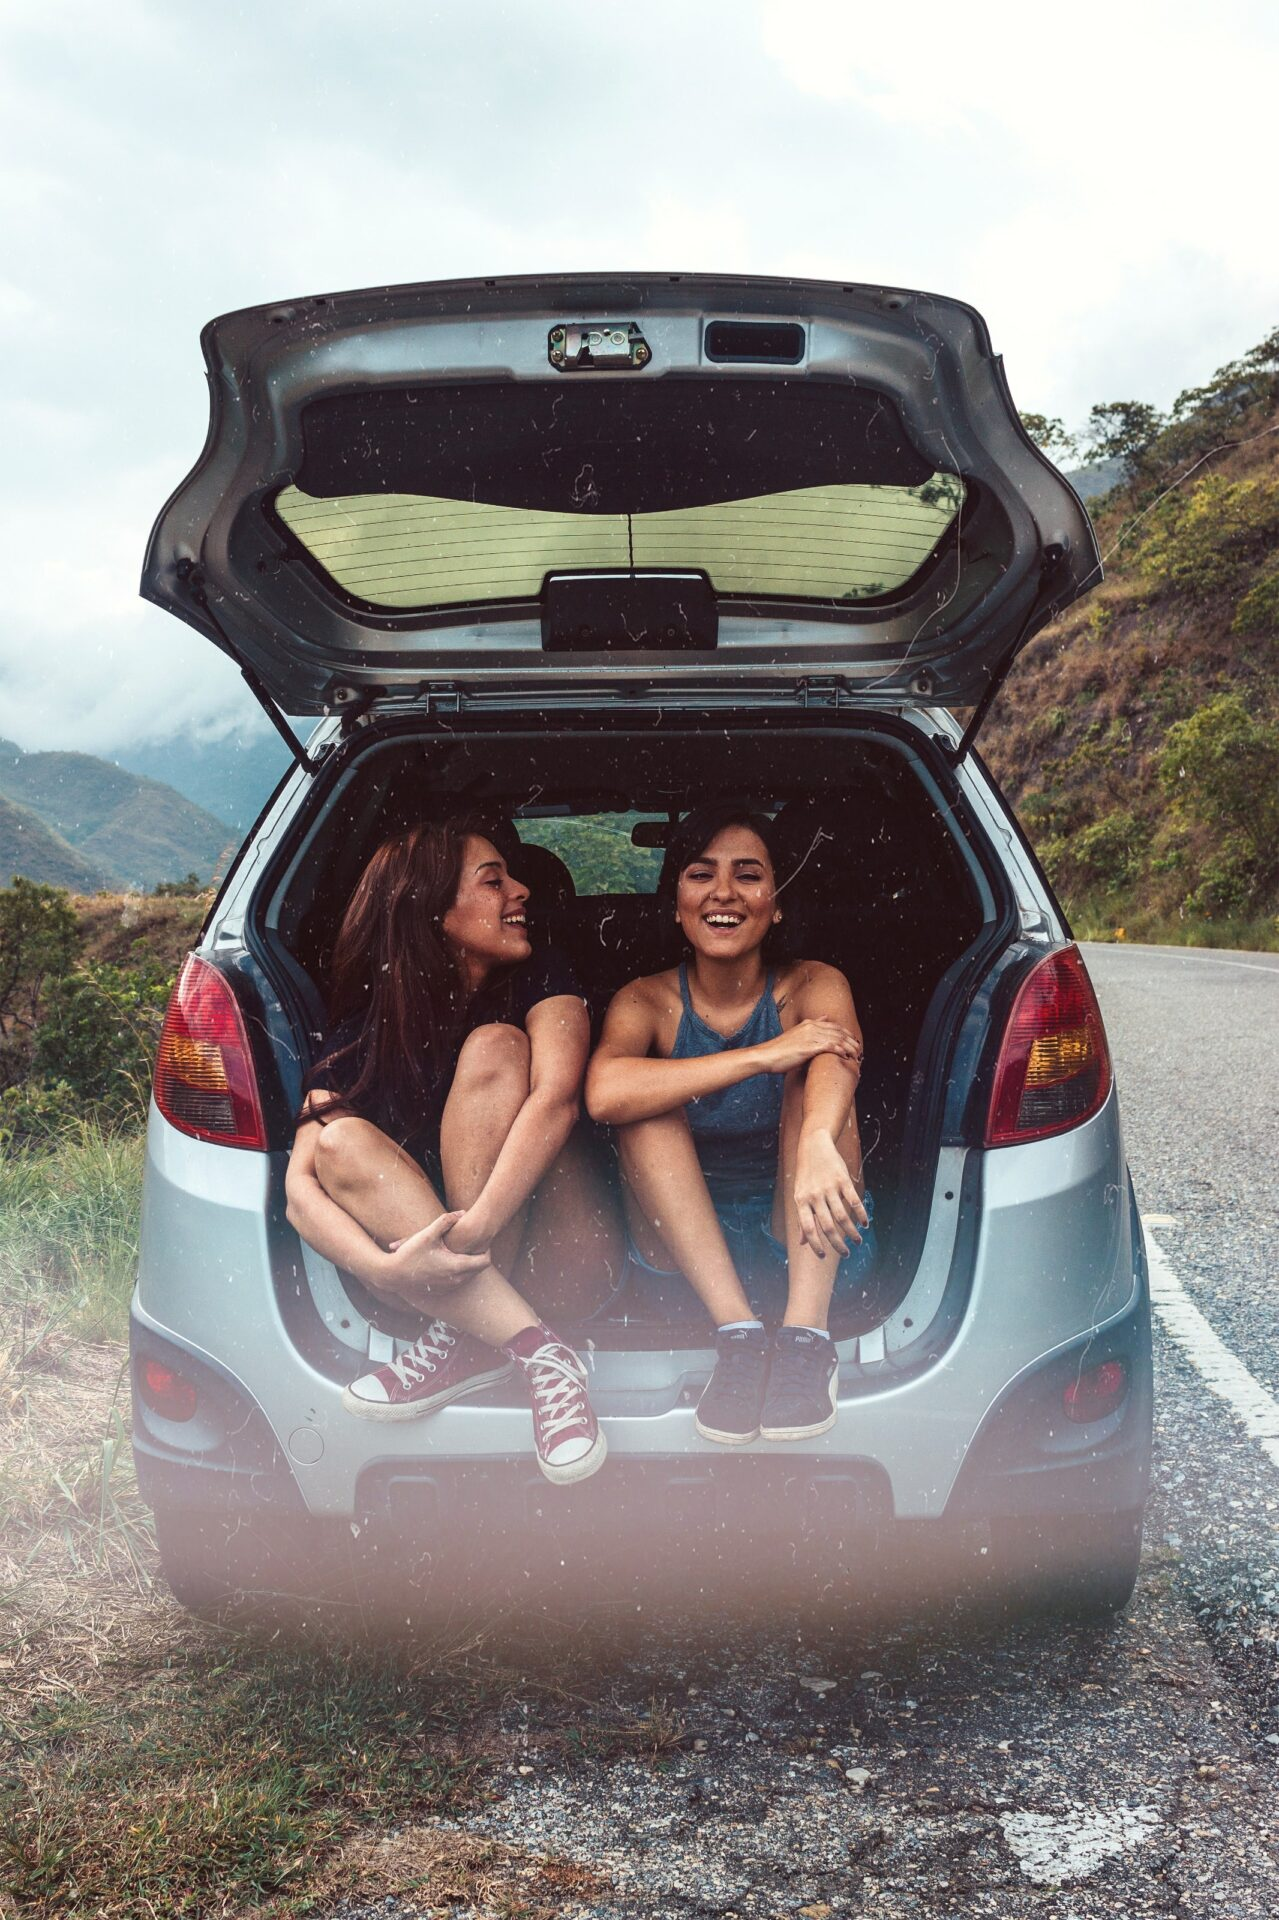 This image shows two young girls sitting in the boot of a car with the doors open as they laugh.